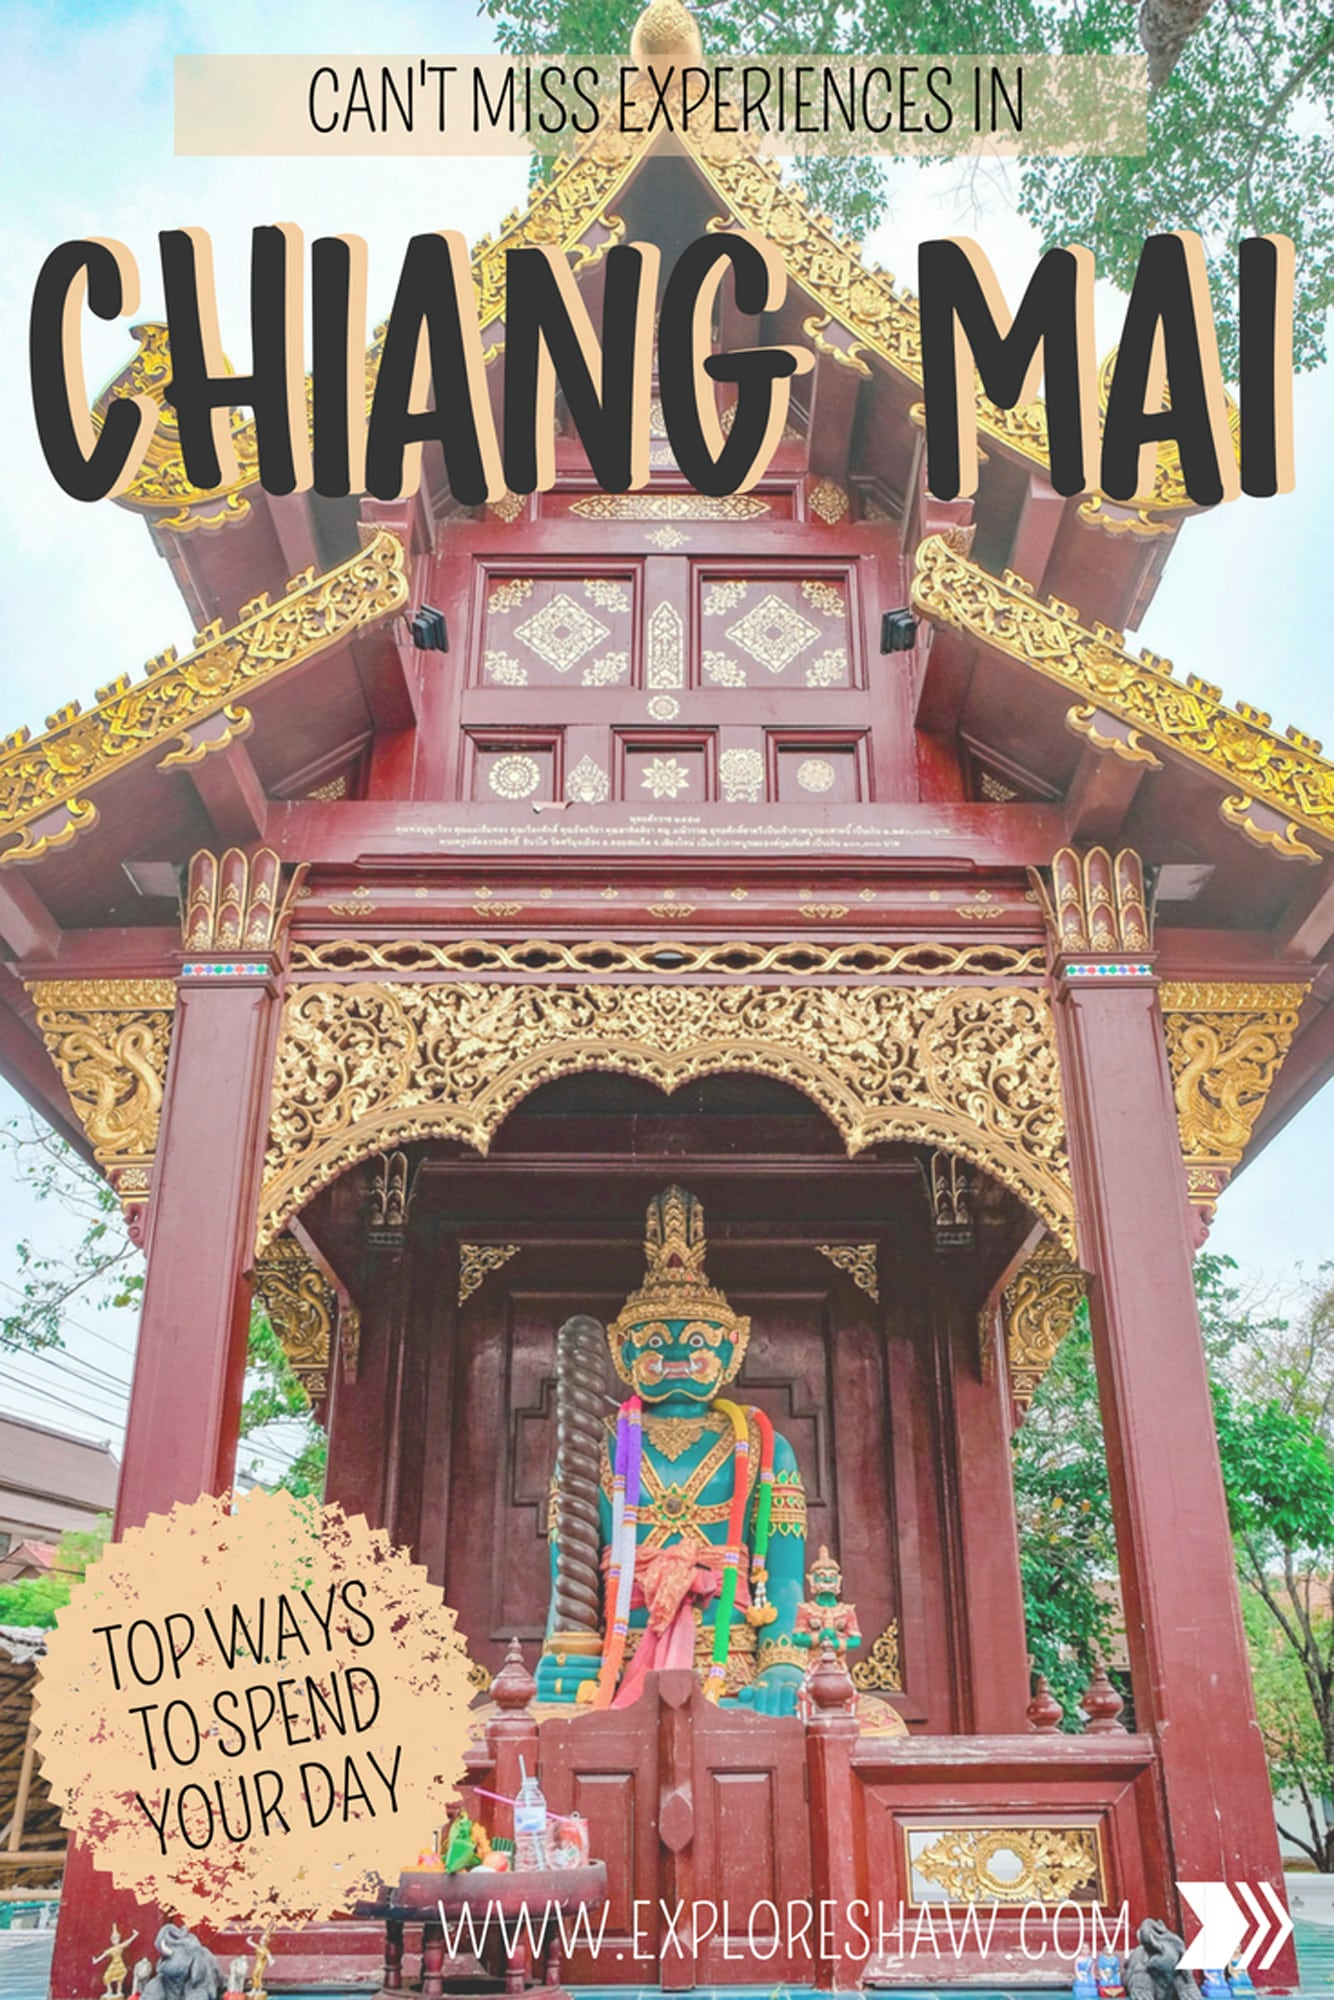 CAN'T MISS EXPERIENCES IN CHIANG MAI